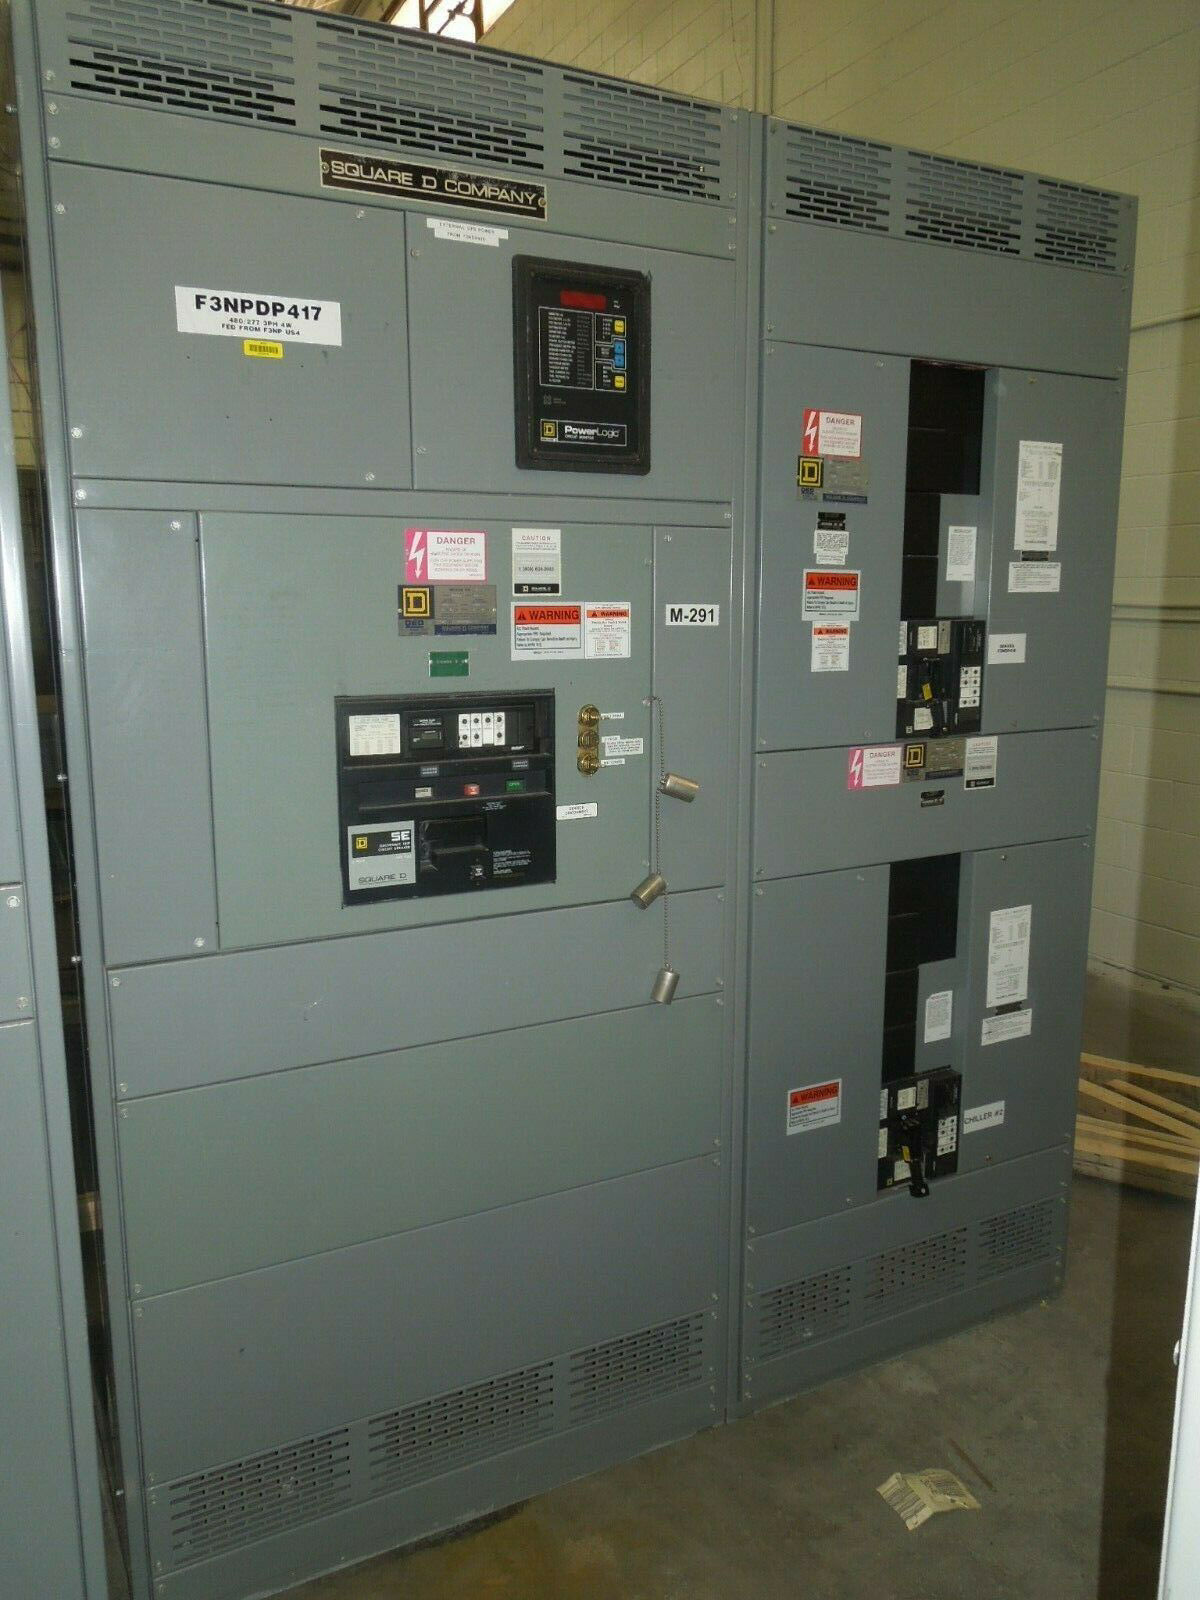 Picture of Square D QED Power Style I-Line Switchboard 2500A 3ph 480Y/277V Main-Tie w/ Dist. LSIG Used E-OK